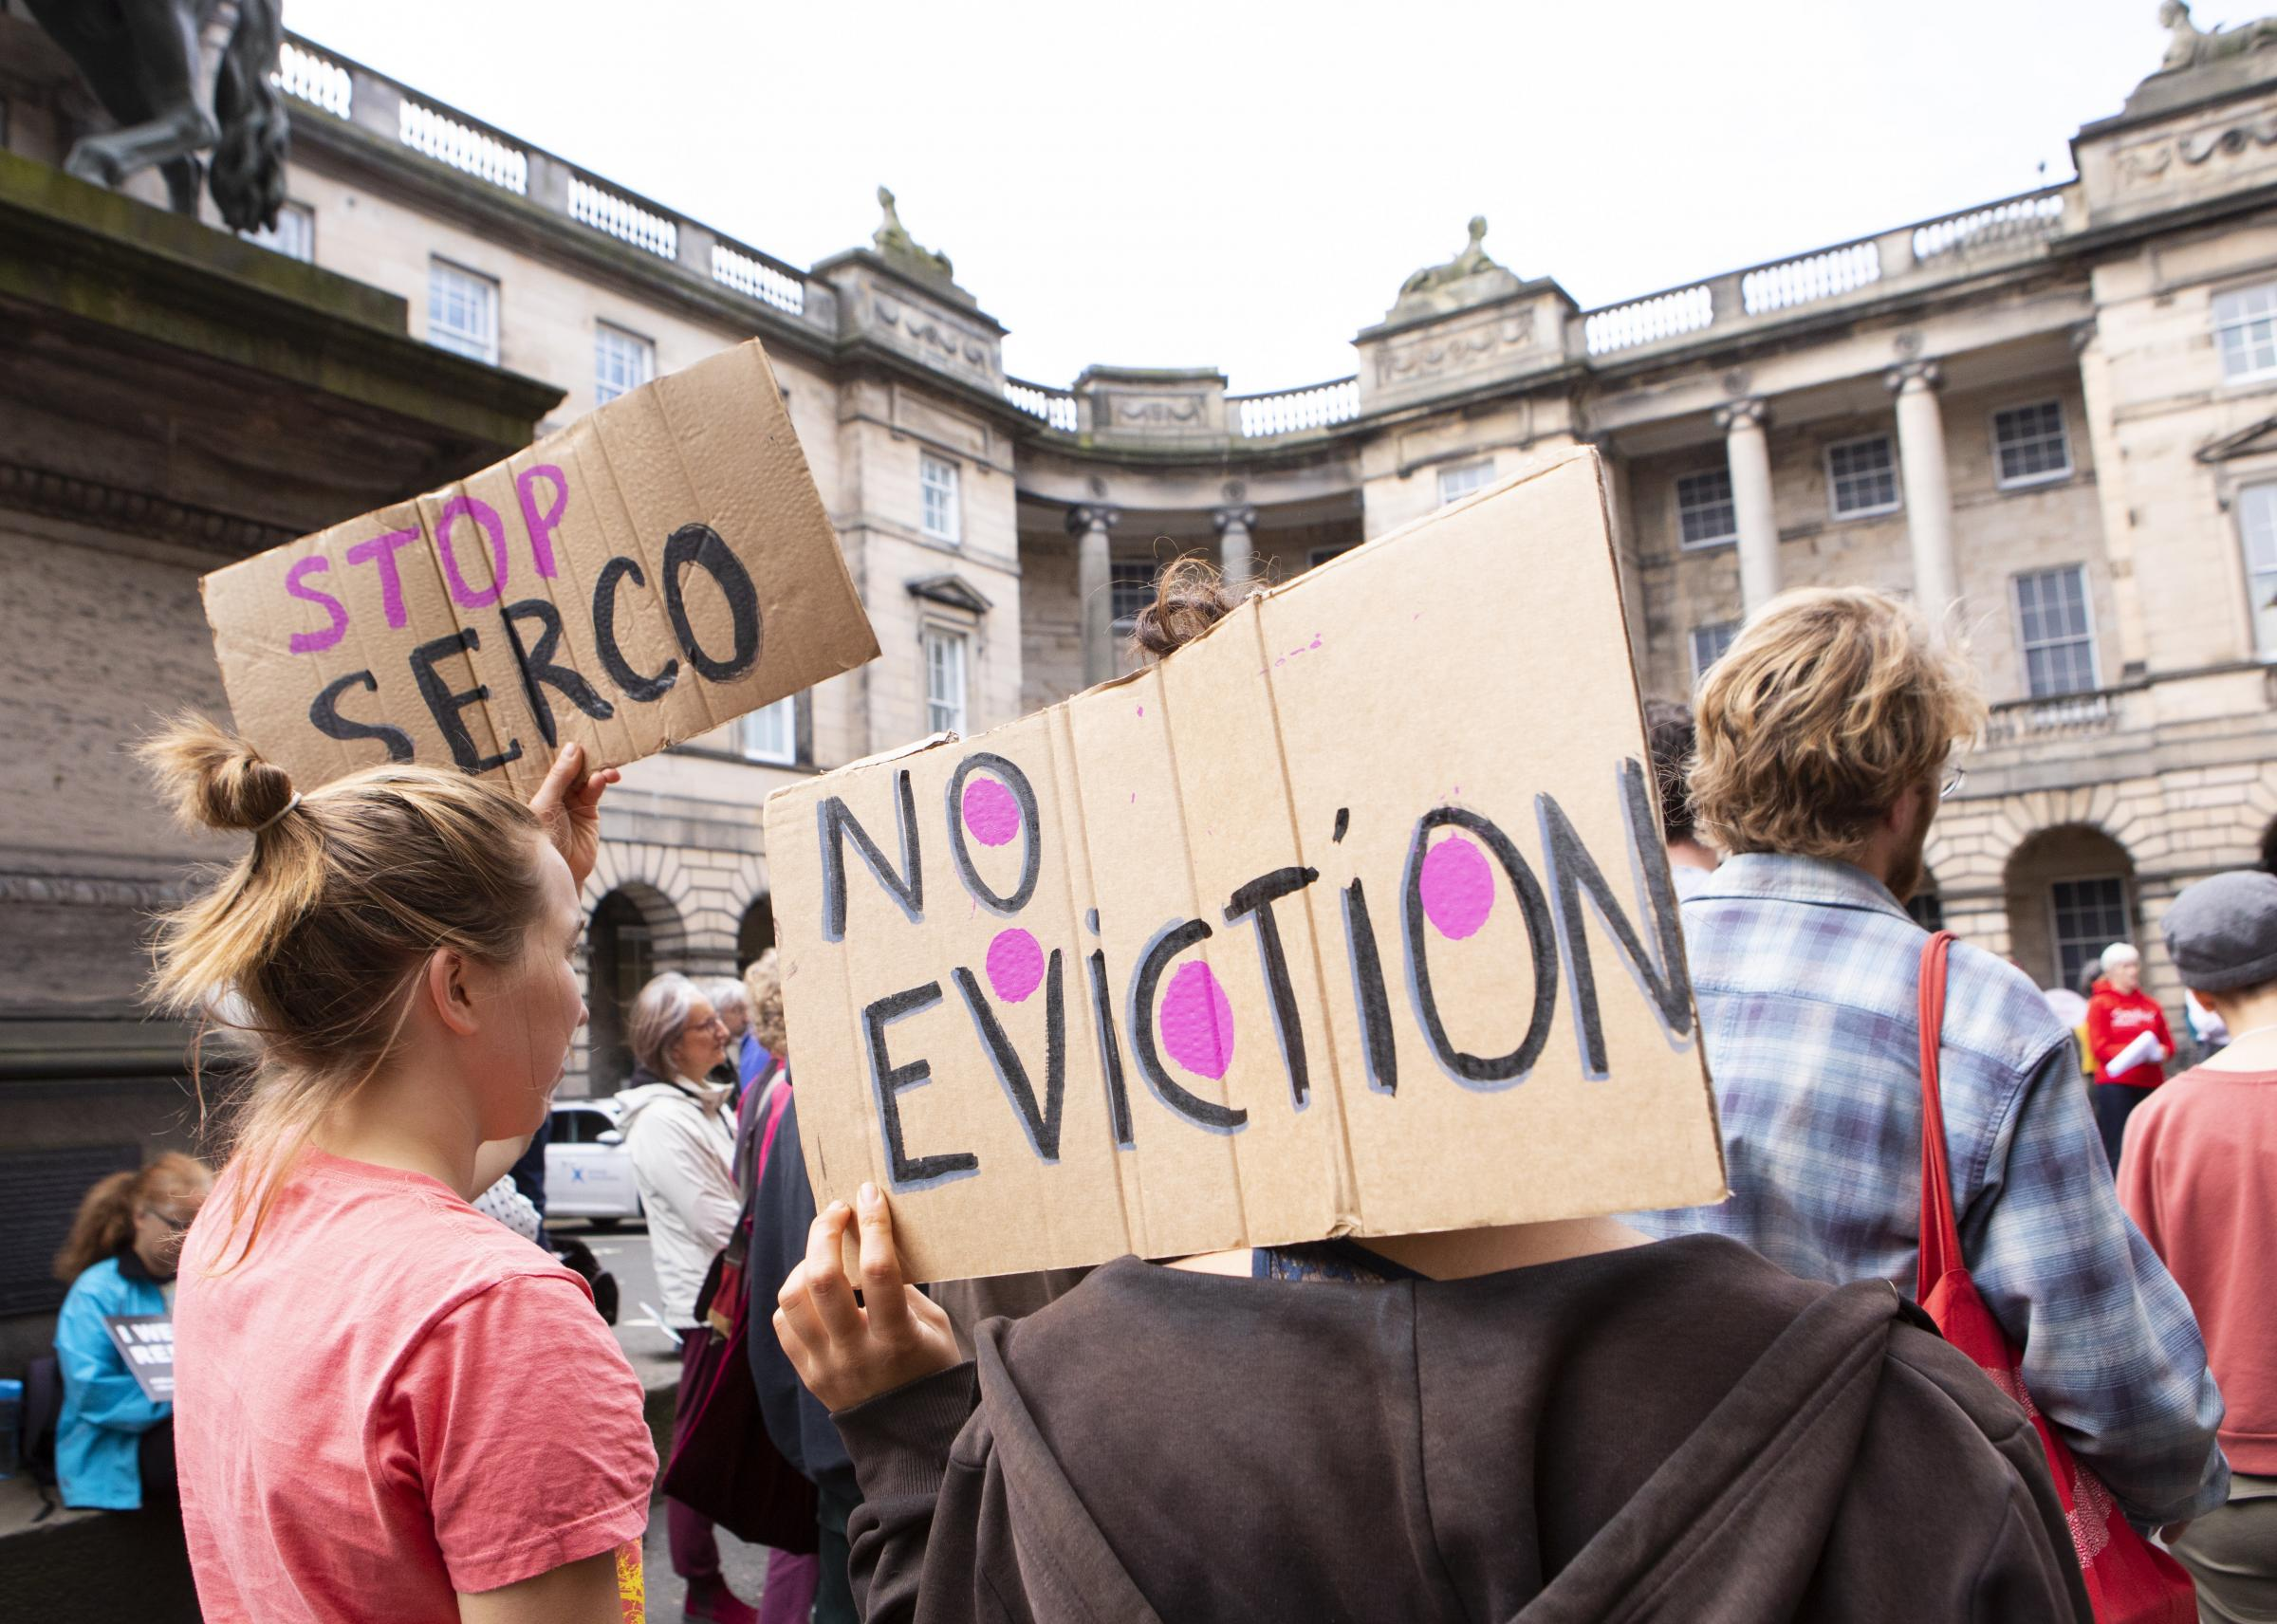 At least 45 asylum seekers facing Hallowe'en eviction from Glasgow homes